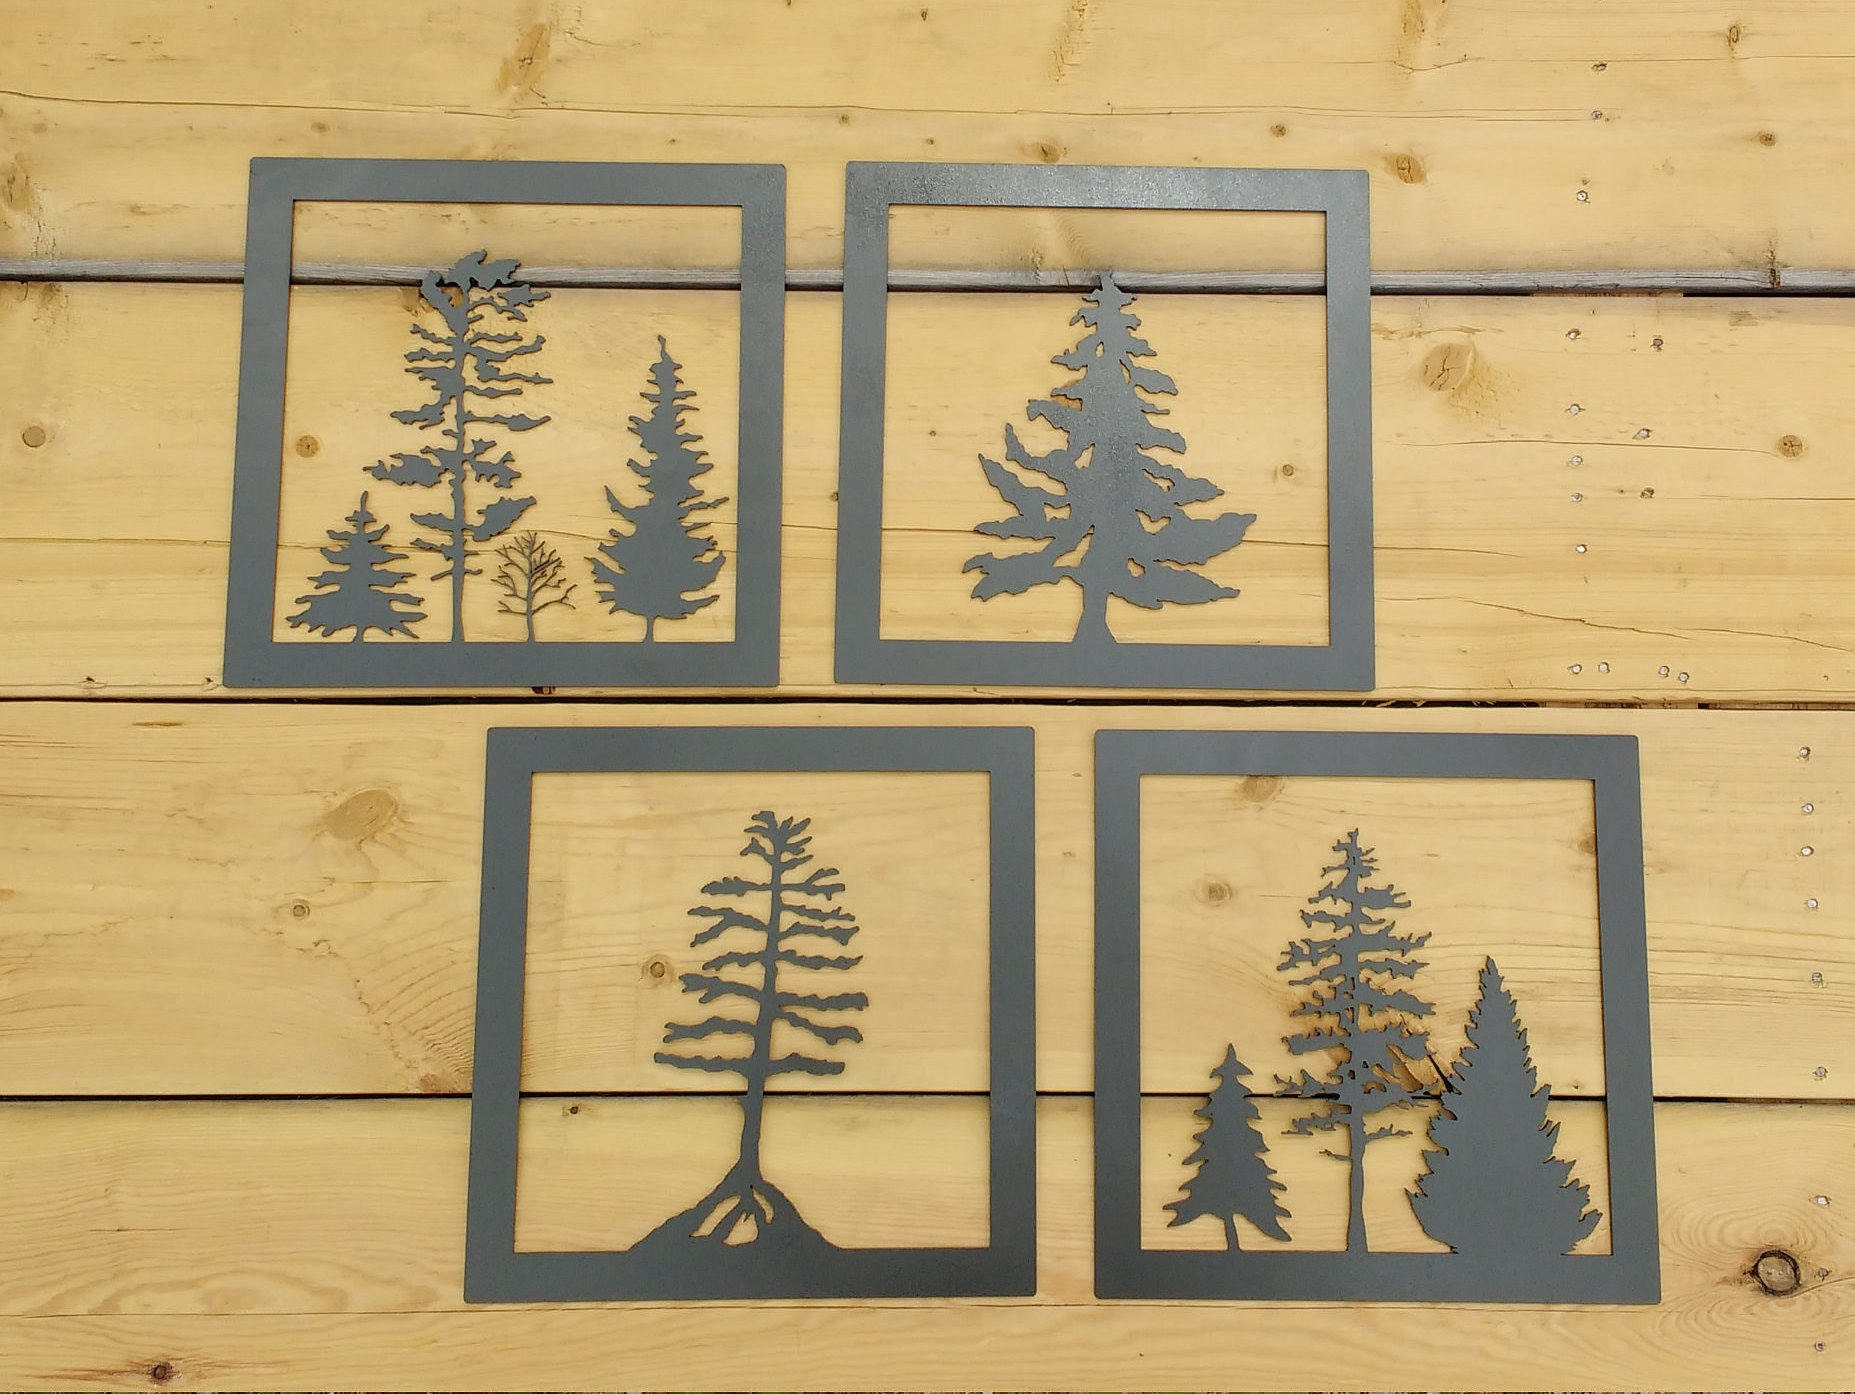 Metal Tree Art Wall Art Decoration Rustic Silhouette